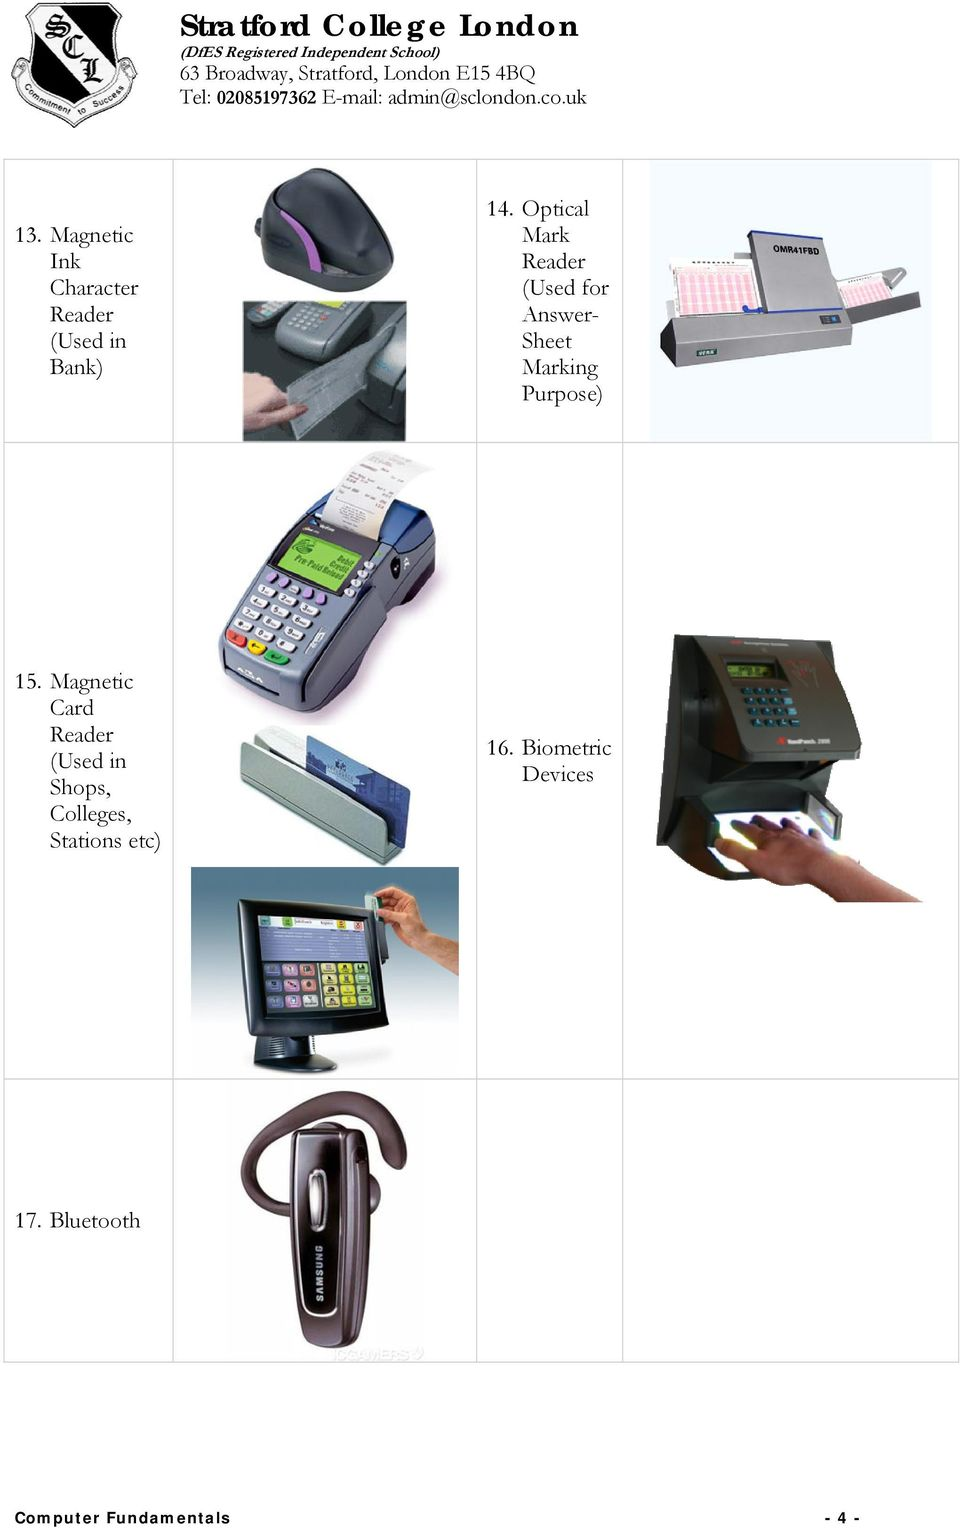 15. Magnetic Card Reader (Used in Shops, Colleges, Stations